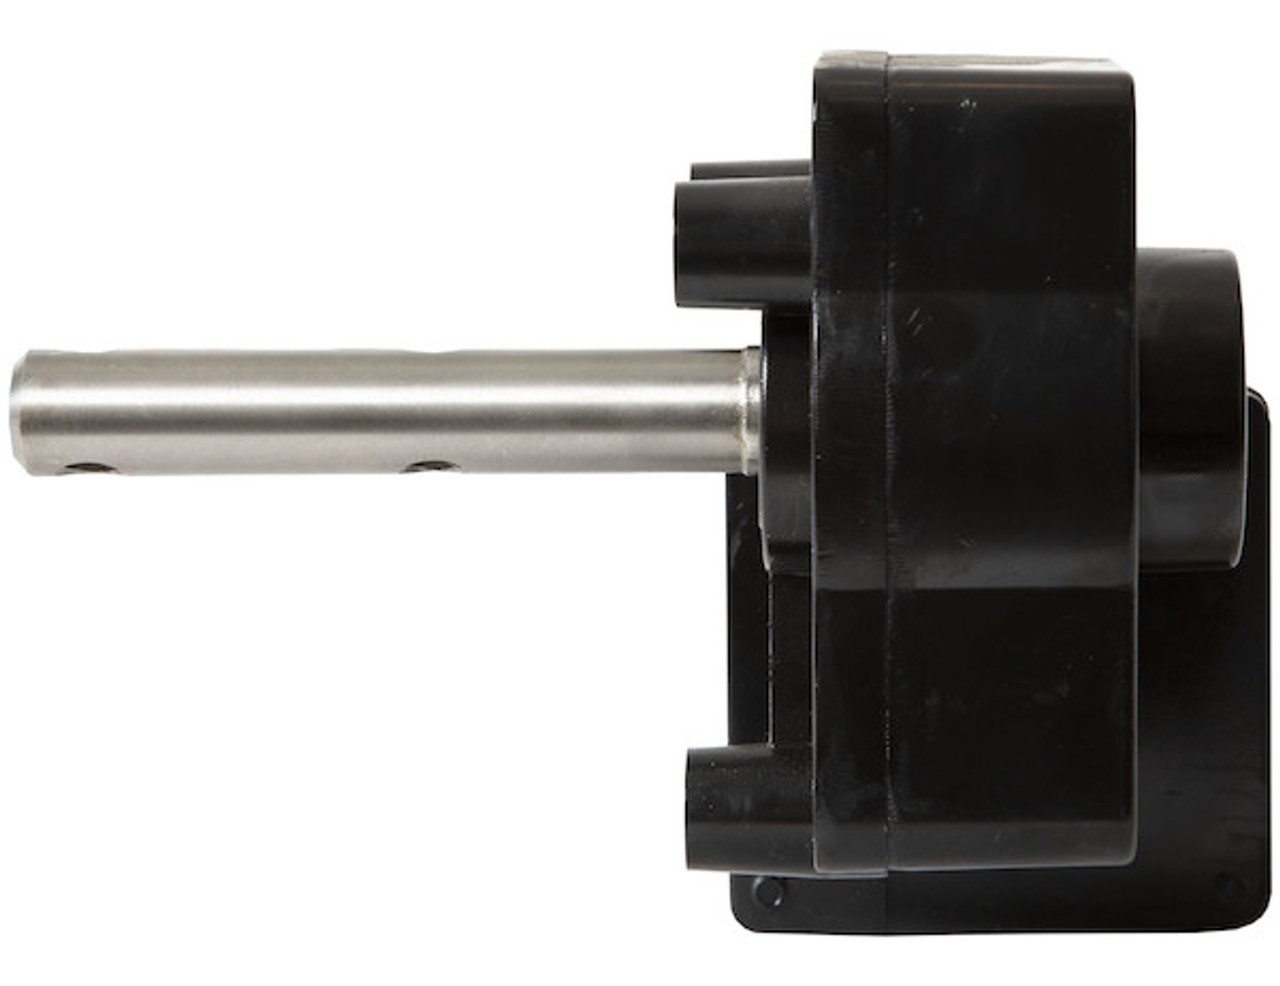 BUYERS 3027293 Replacement Standard Chute Spinner Gear Motor For SaltDogg SHPE 0750-2000 Series Spreaders 4